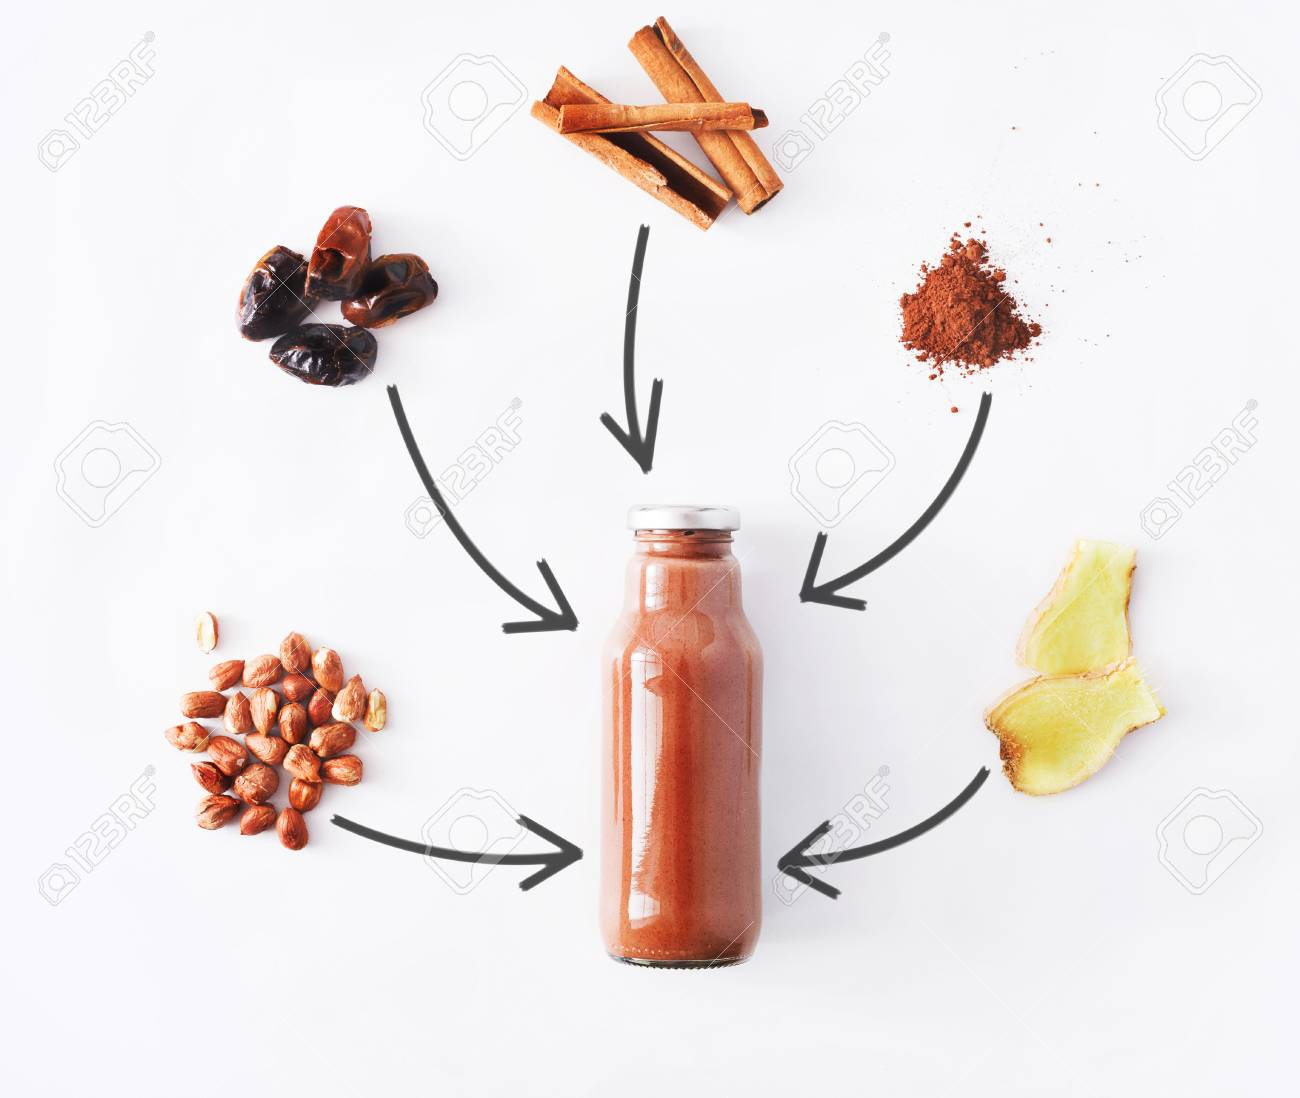 Detox Healthy Drink Concept Chocolate Smoothie Ingredients Stock